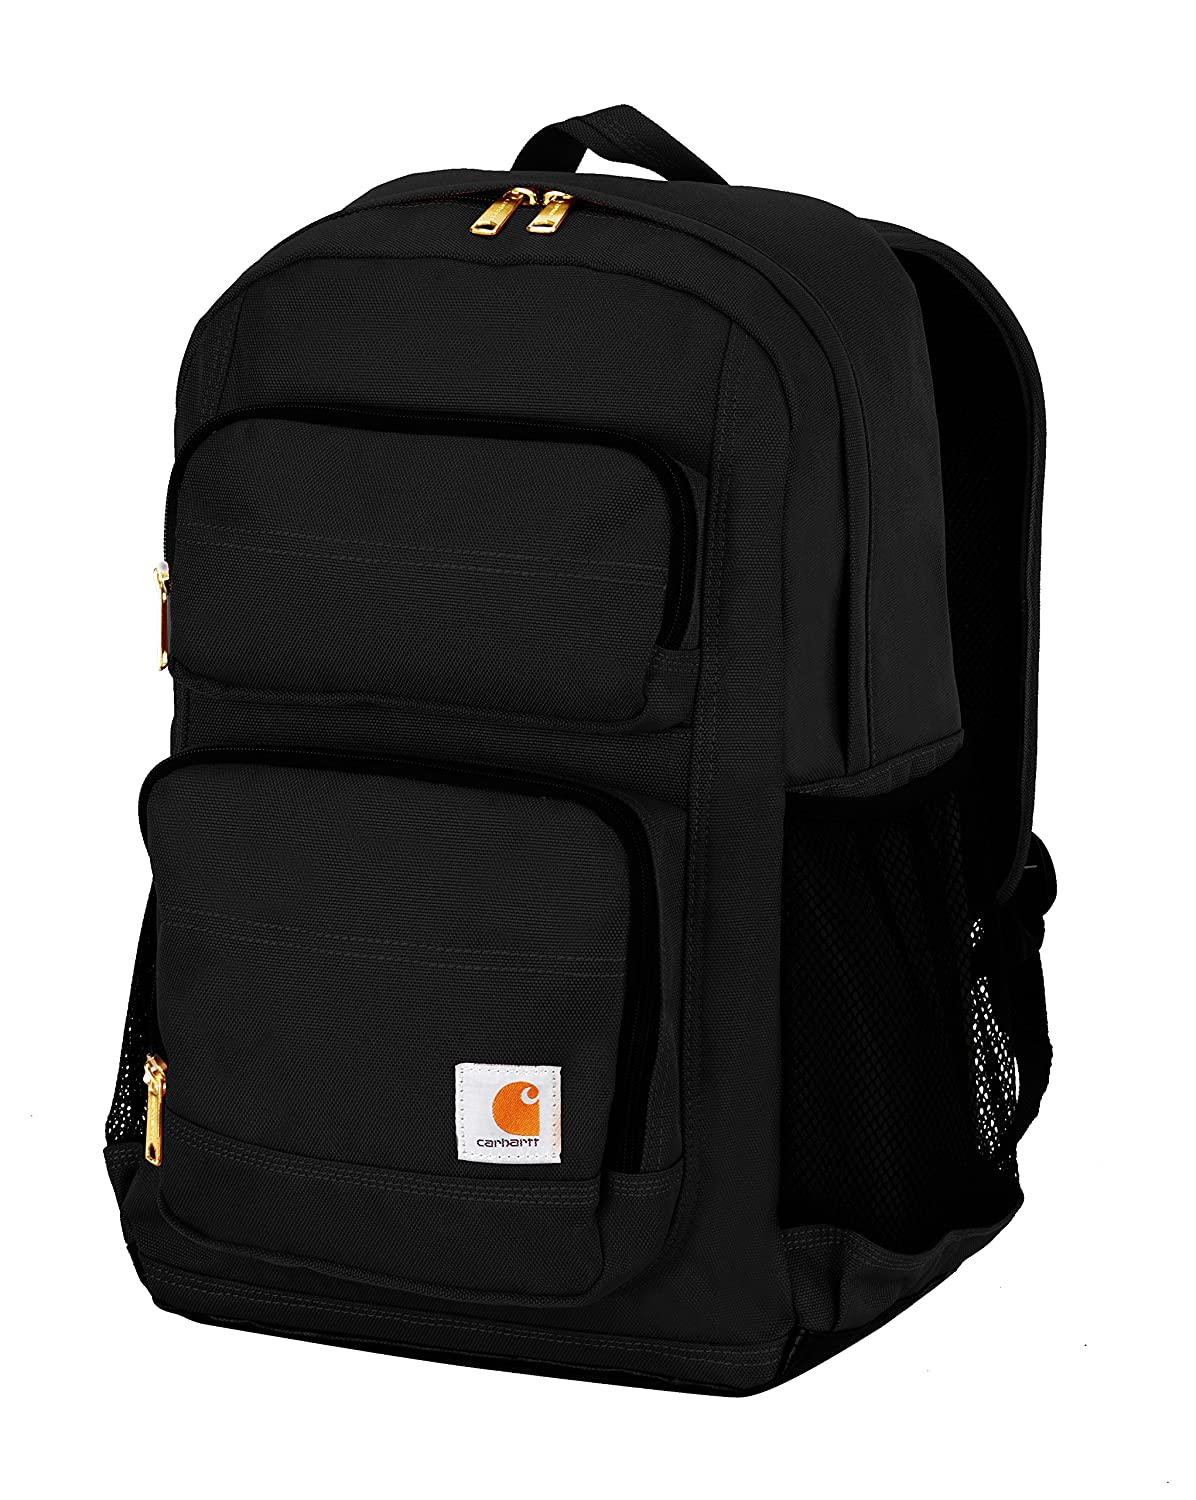 0dc0af9bb56 Amazon.com: Carhartt Legacy Standard Work Backpack with Padded Laptop  Sleeve and Tablet Storage, Black: Sports & Outdoors